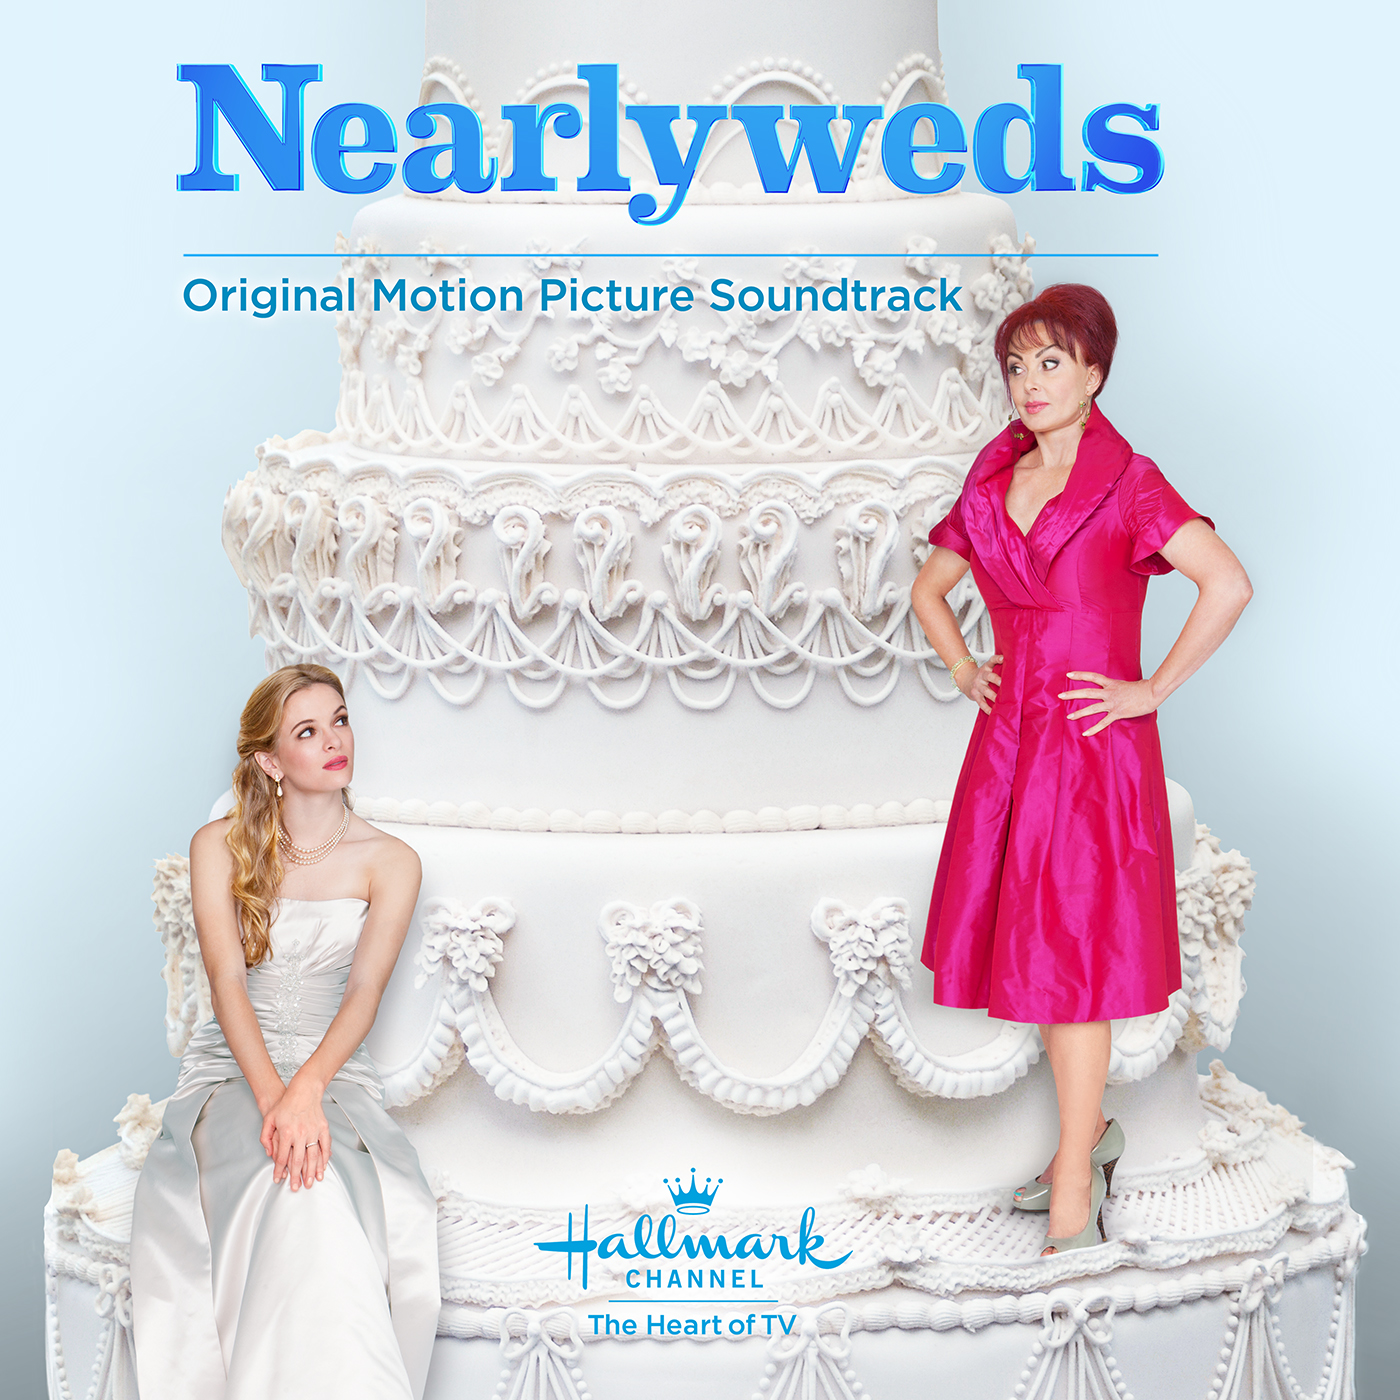 01CM-2012-Nearlyweds-SoundtrackCover_Final.jpg